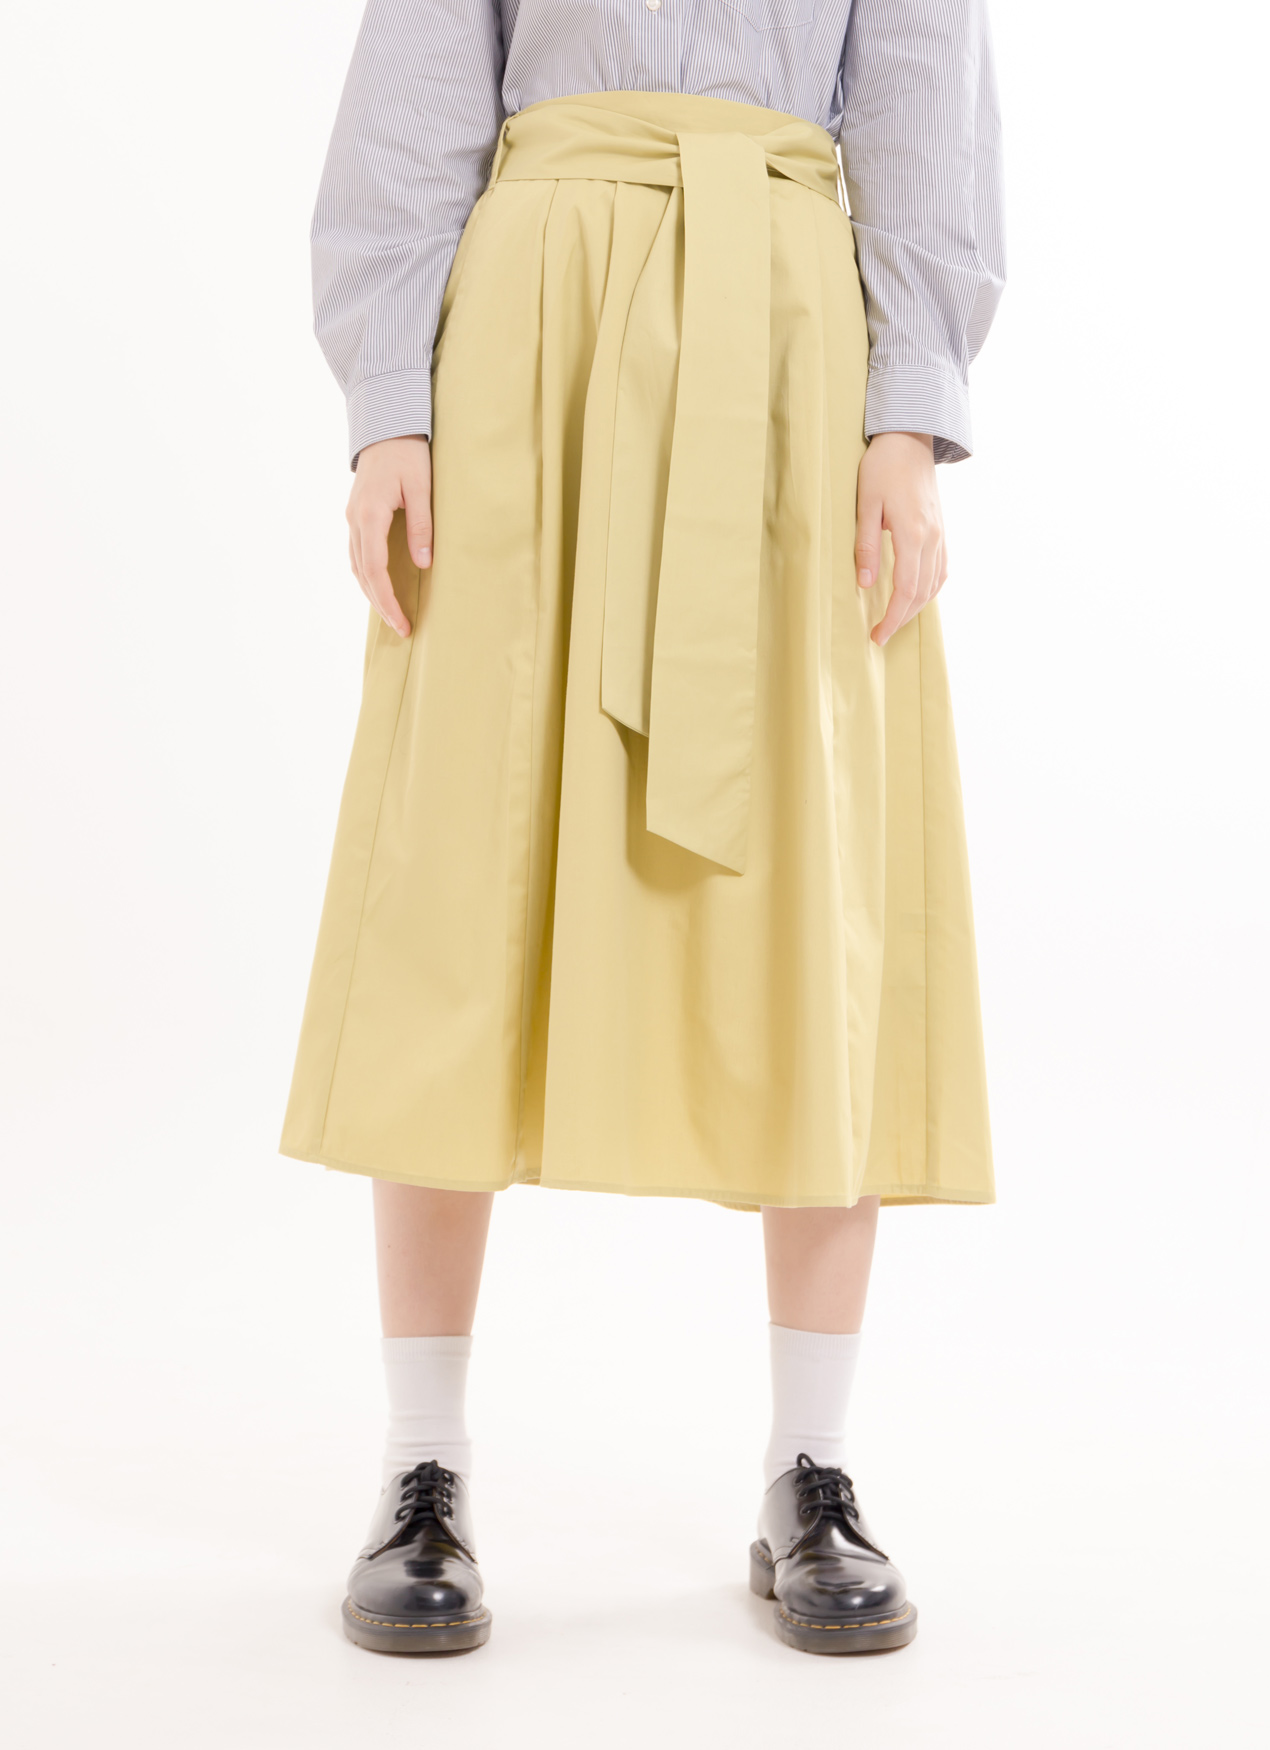 Earth, Music & Ecology Maya Skirt - Yellow